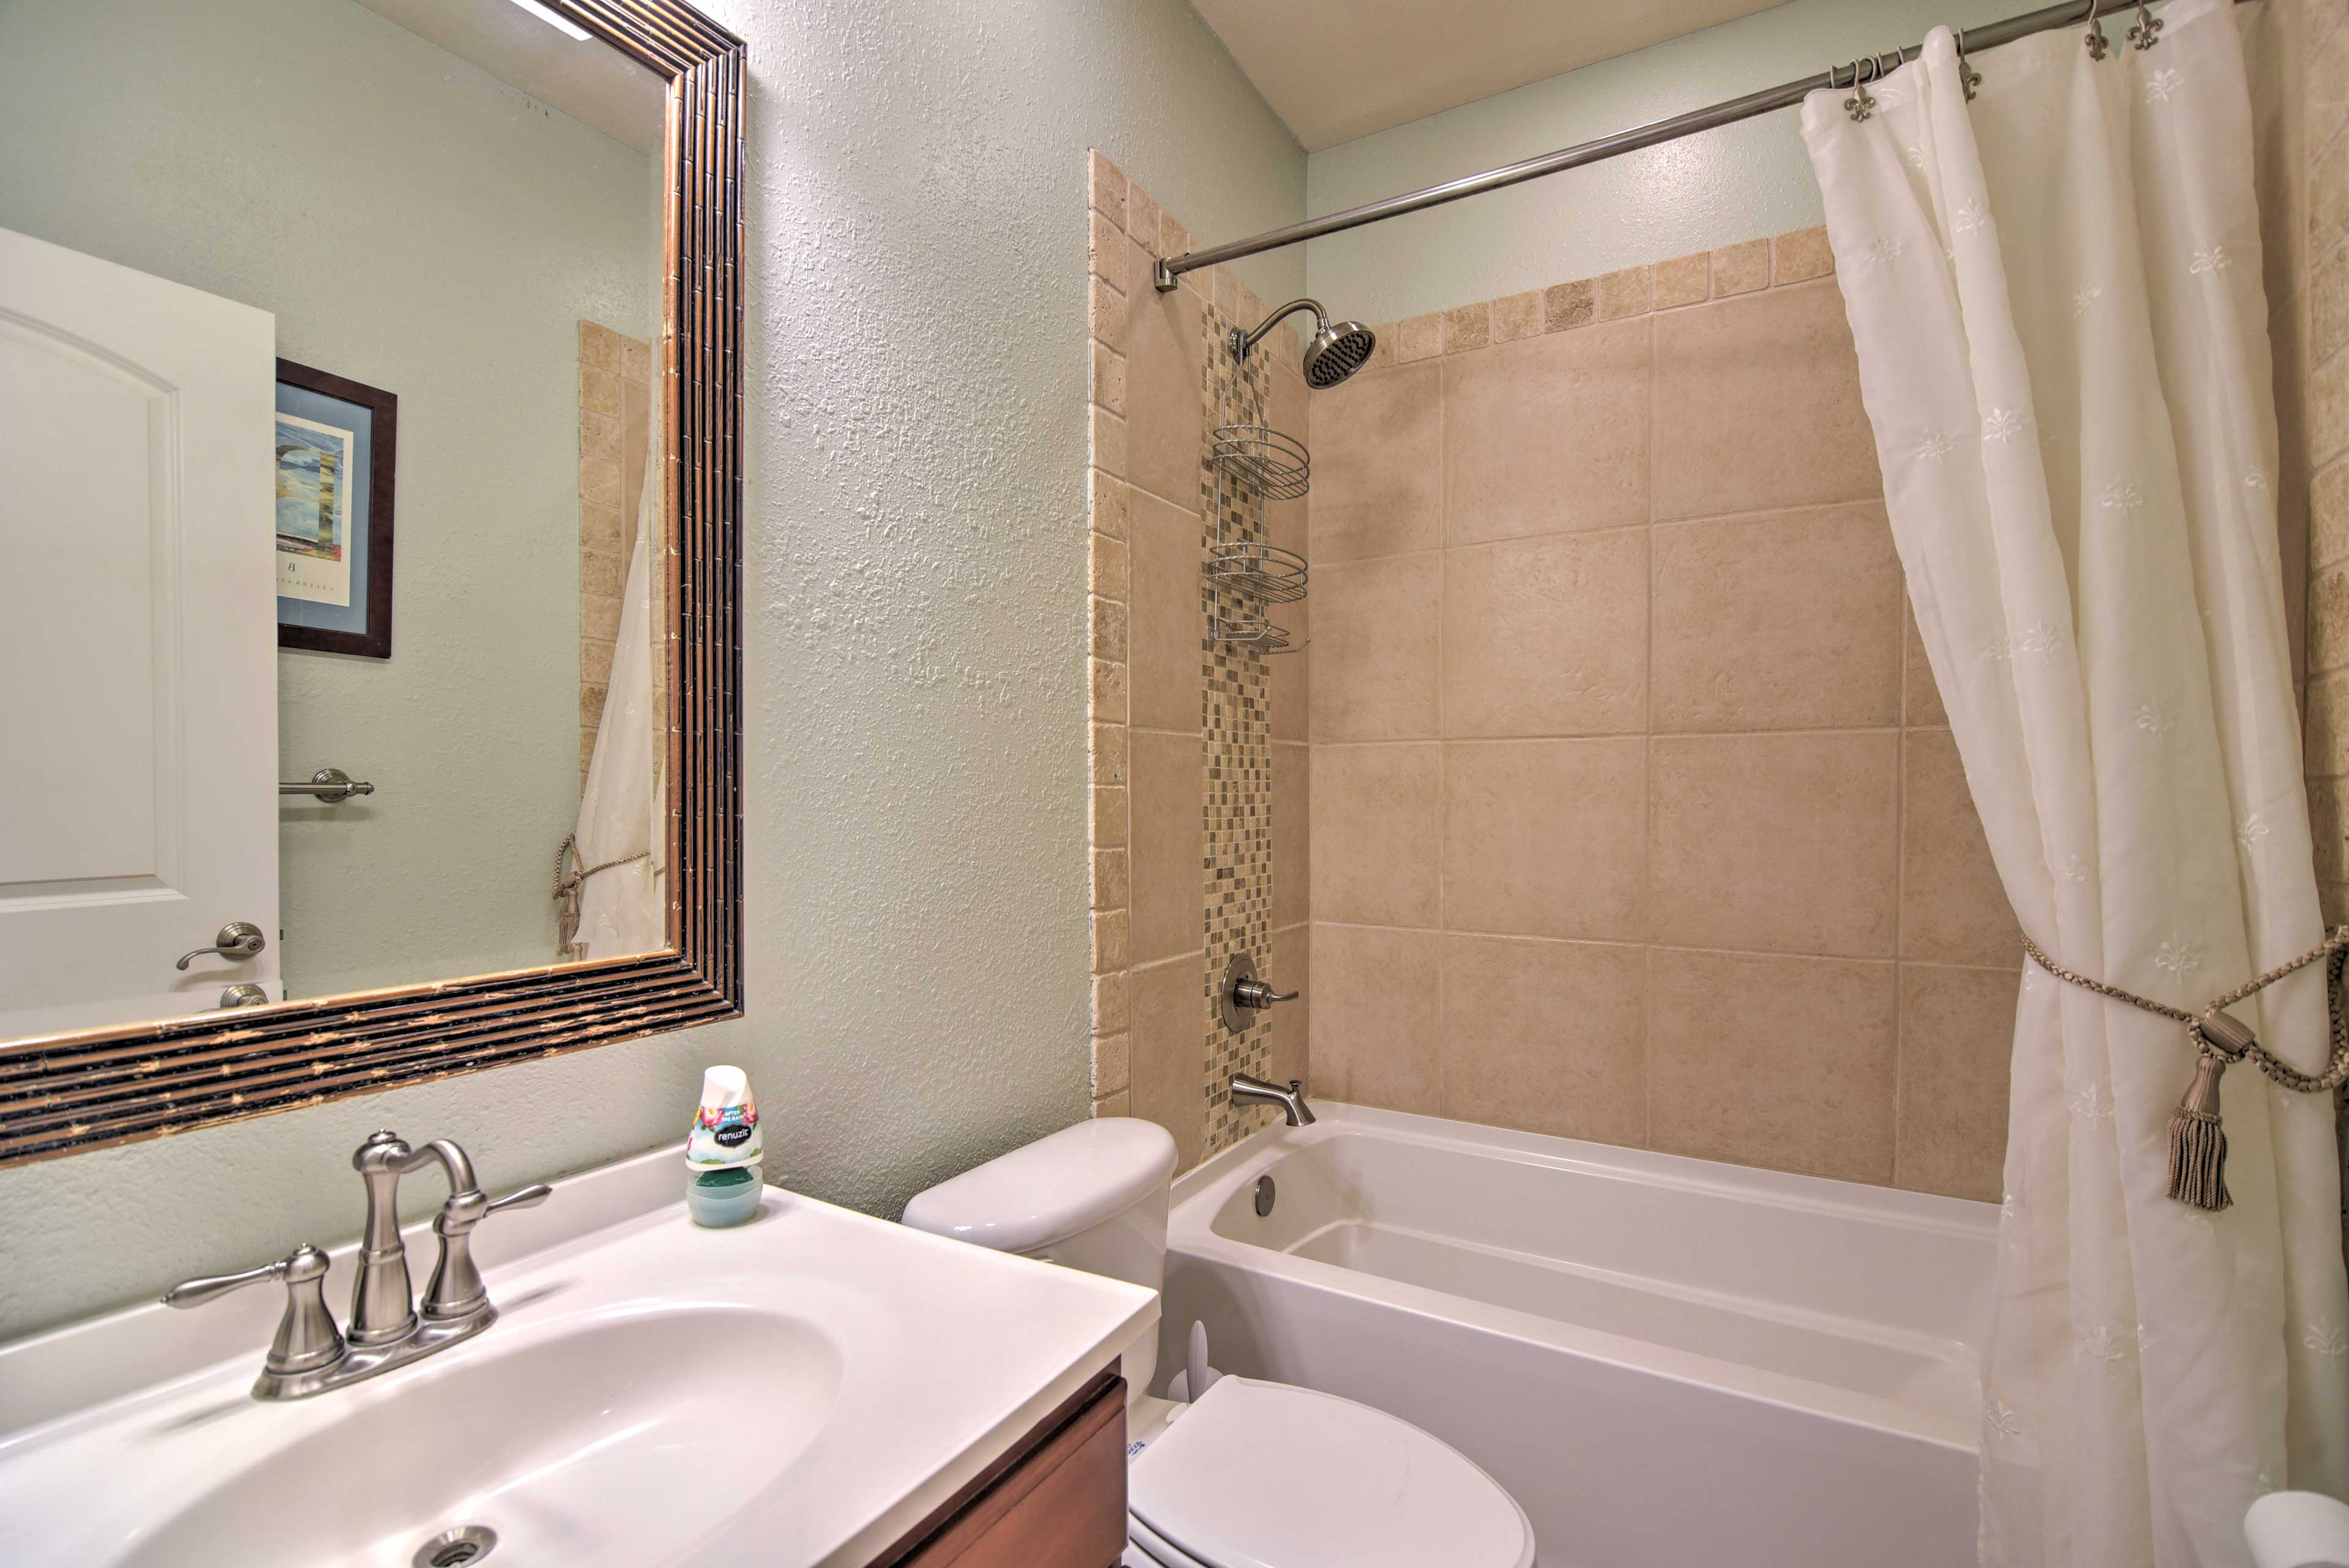 Everyone can get ready with ease with 3 full bathrooms!